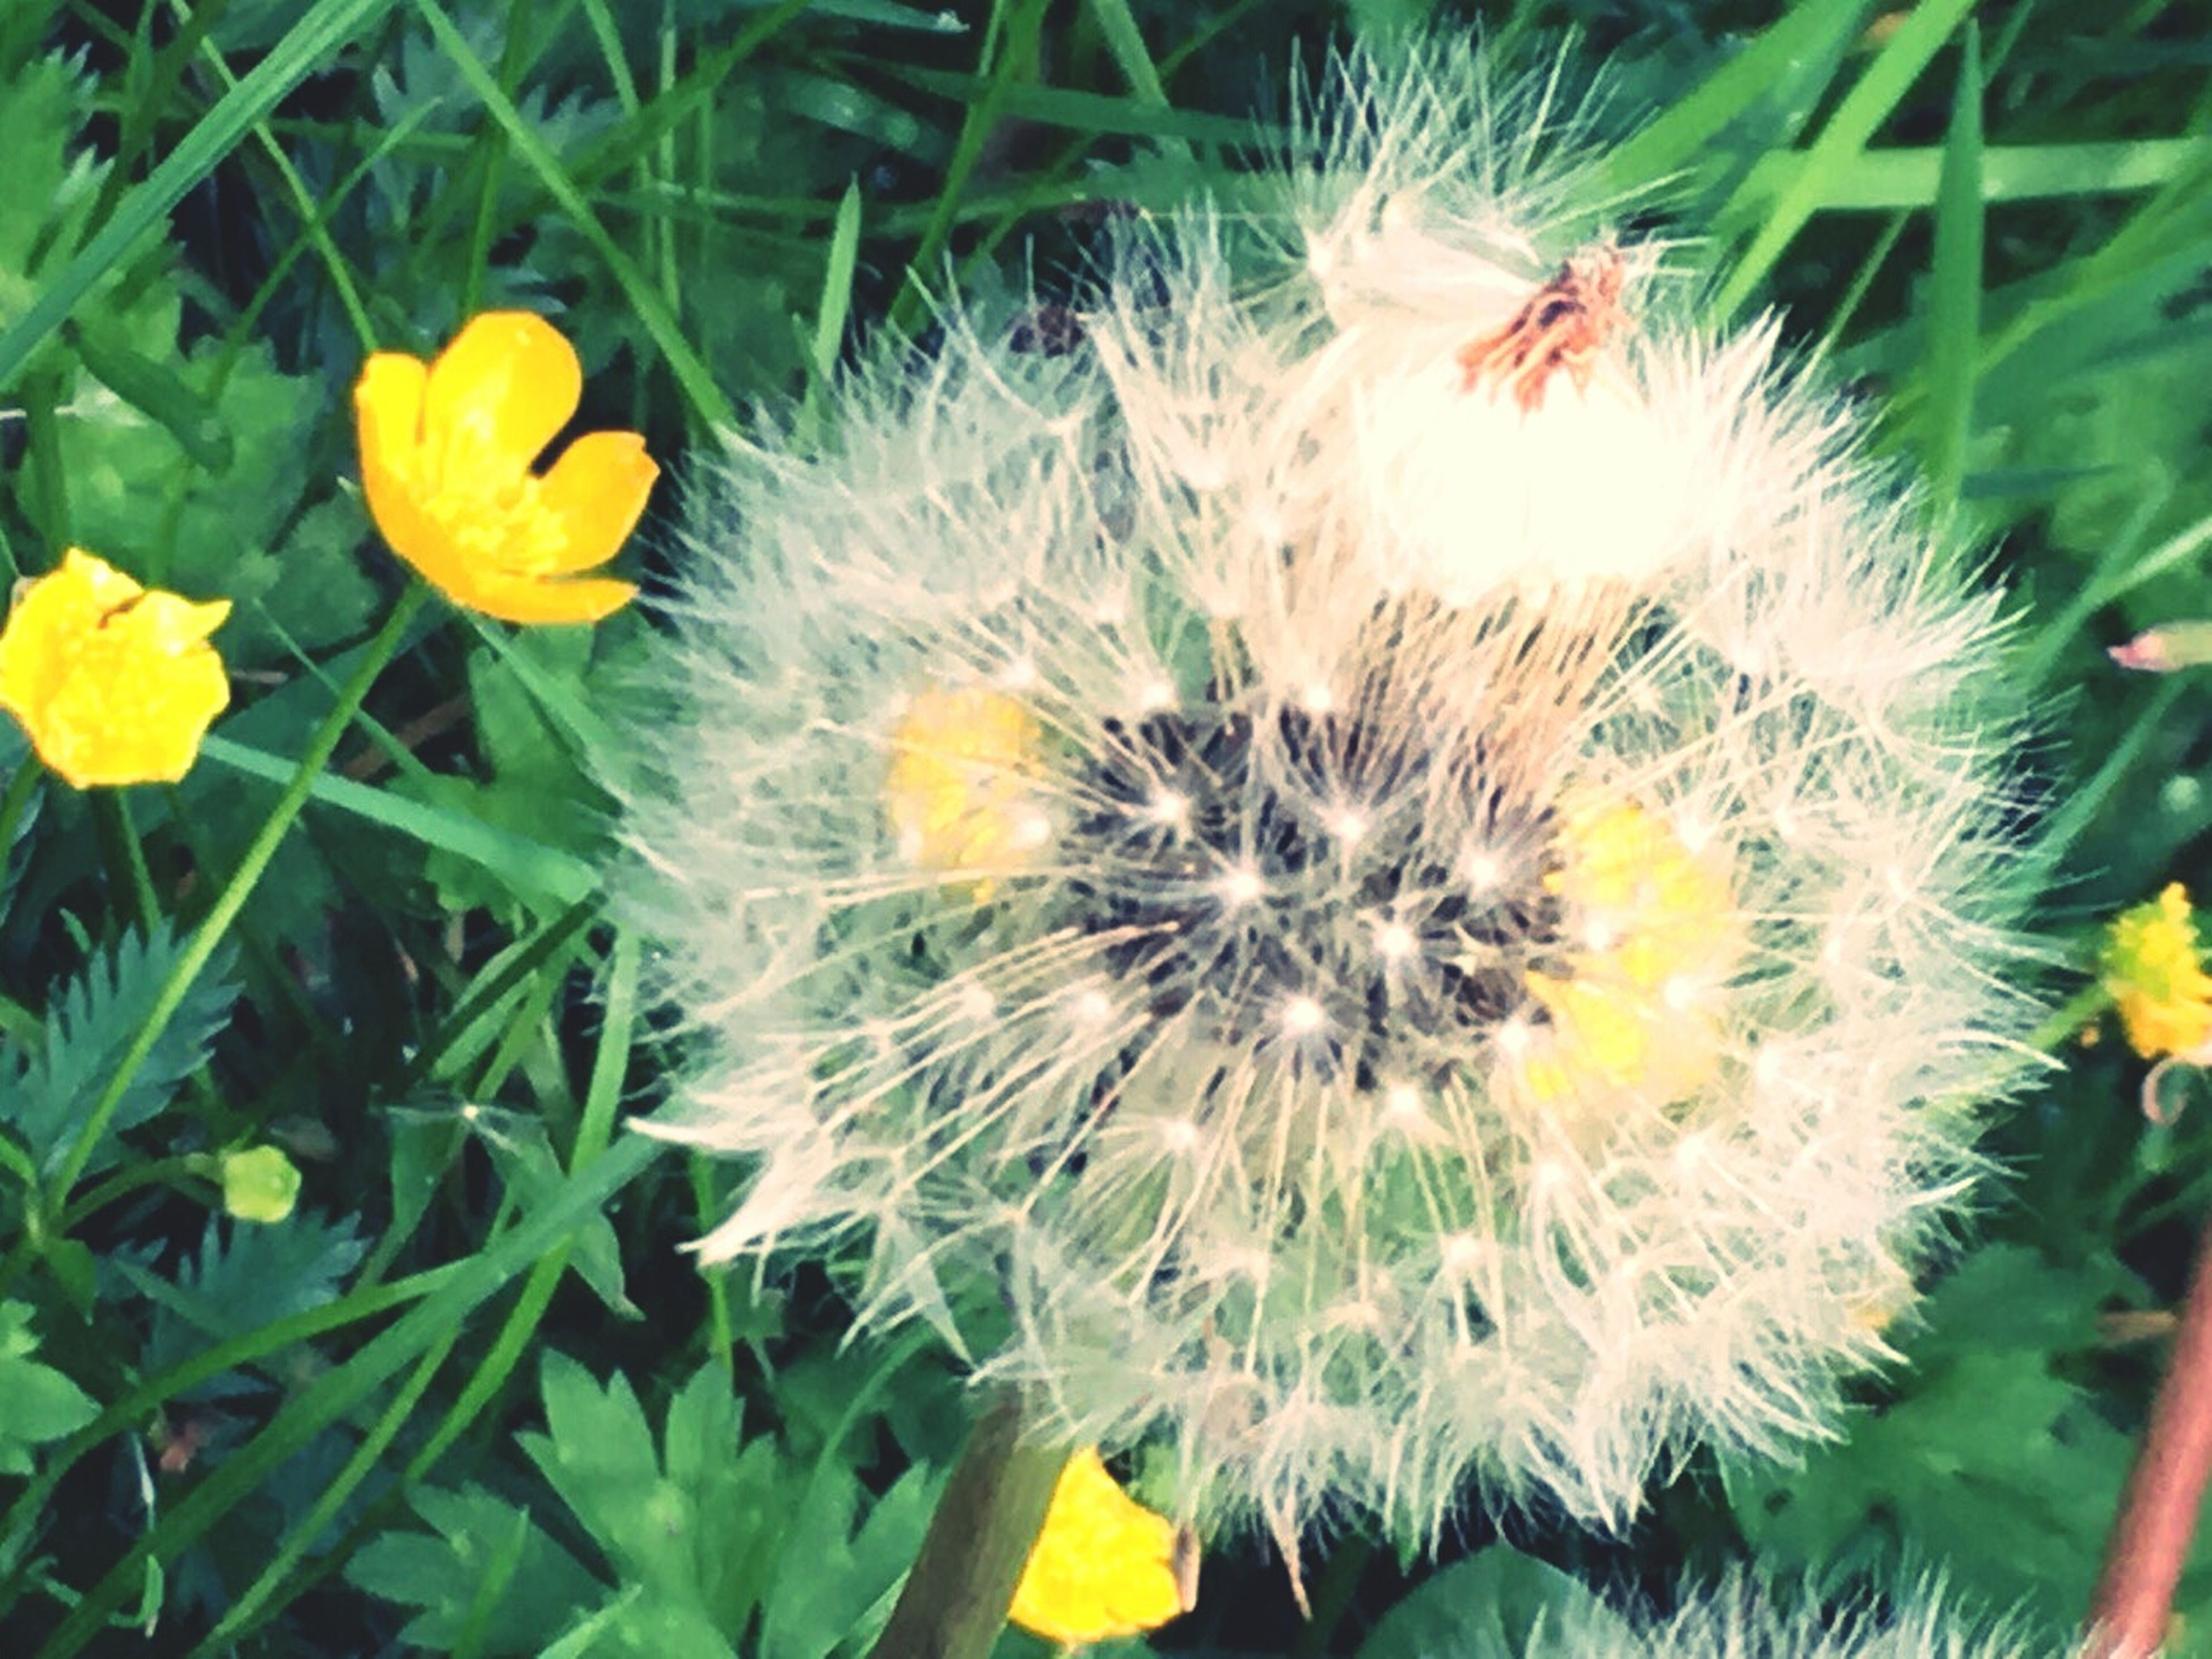 flower, fragility, freshness, flower head, growth, yellow, petal, plant, beauty in nature, blooming, dandelion, nature, close-up, field, in bloom, single flower, focus on foreground, high angle view, day, stem